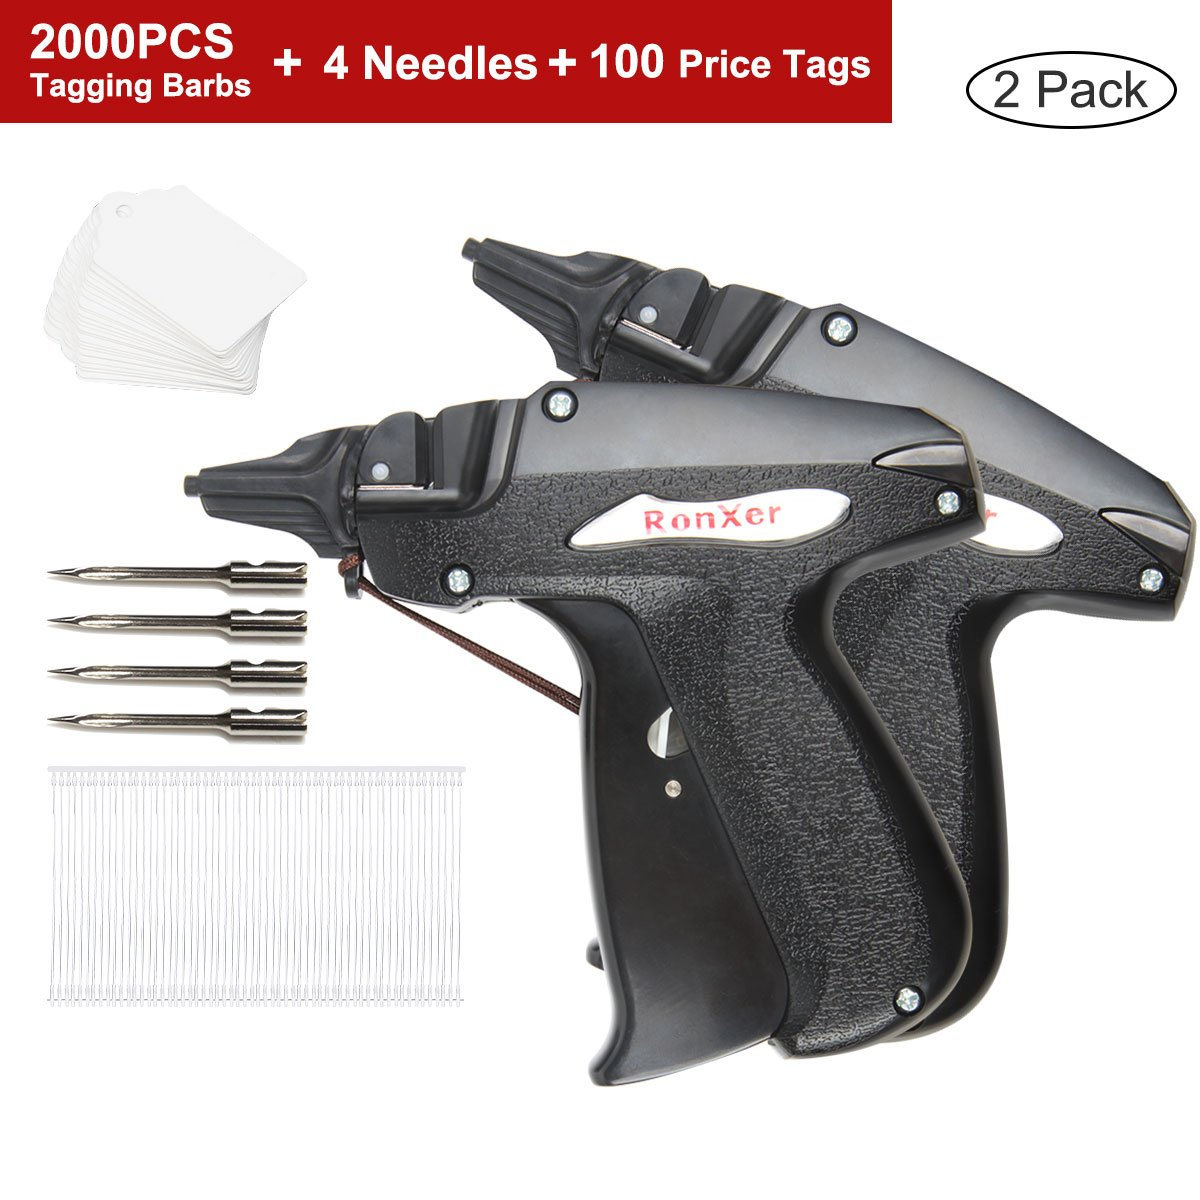 RonXer Standard Clothes Tagging Gun with 2000 2'' Attachments and 4 Carbon Steel Standard Needles 100 Price Tags,Standard Price Tag Gun Kit for Consignment Sale Family Yard Sale Garage Sale Boutique